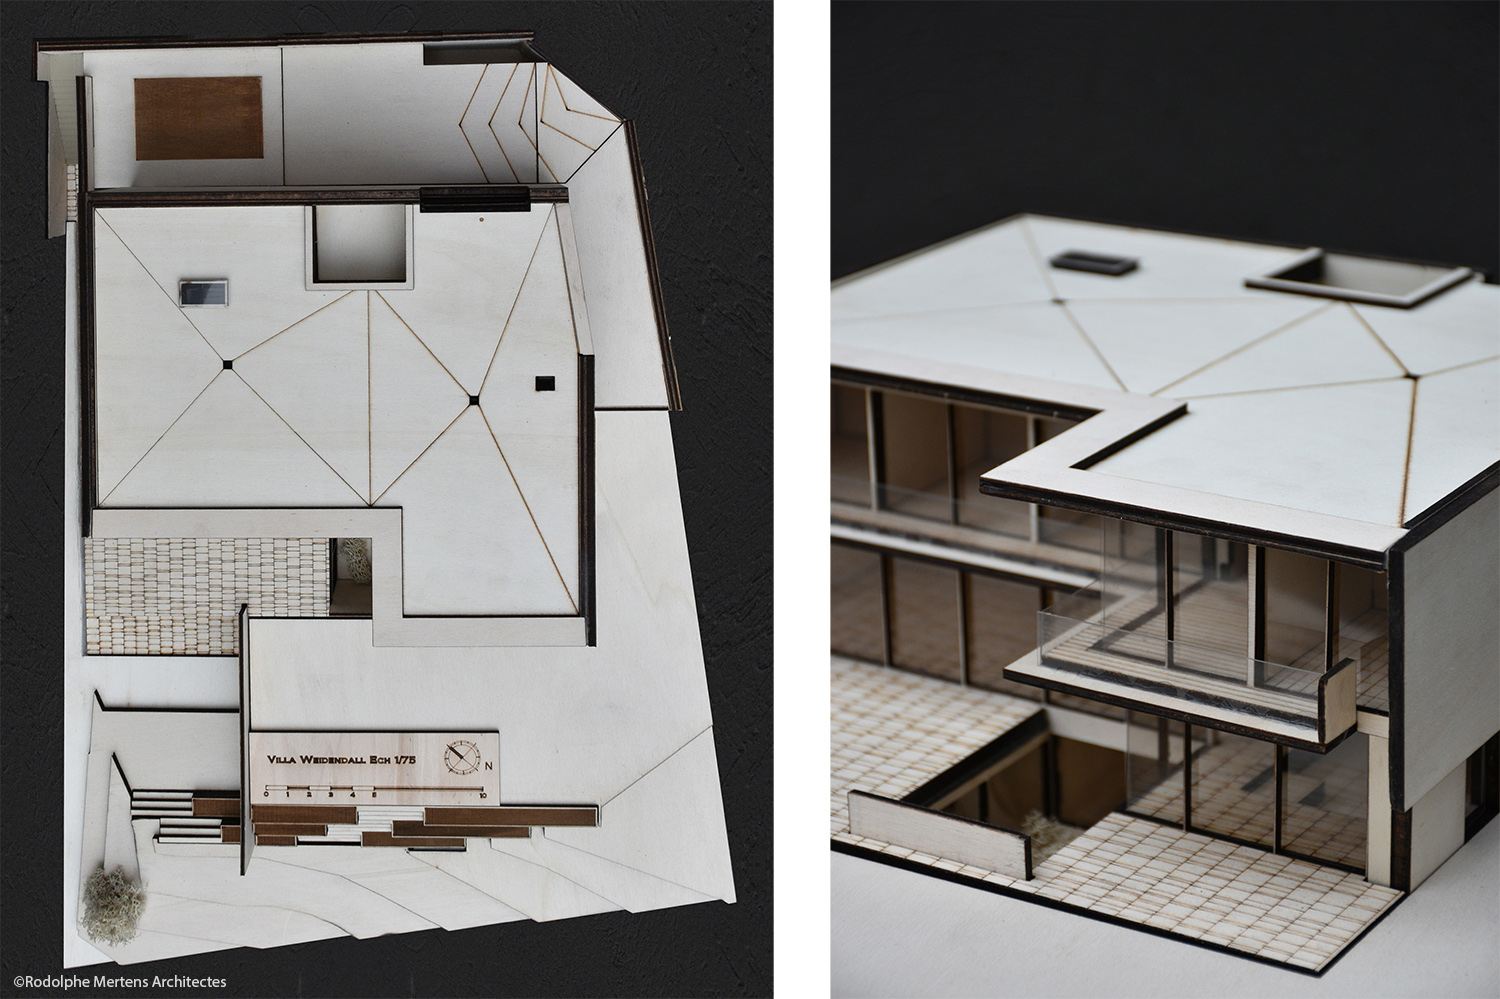 top view and detail of model Rodolphe Mertens Architects}